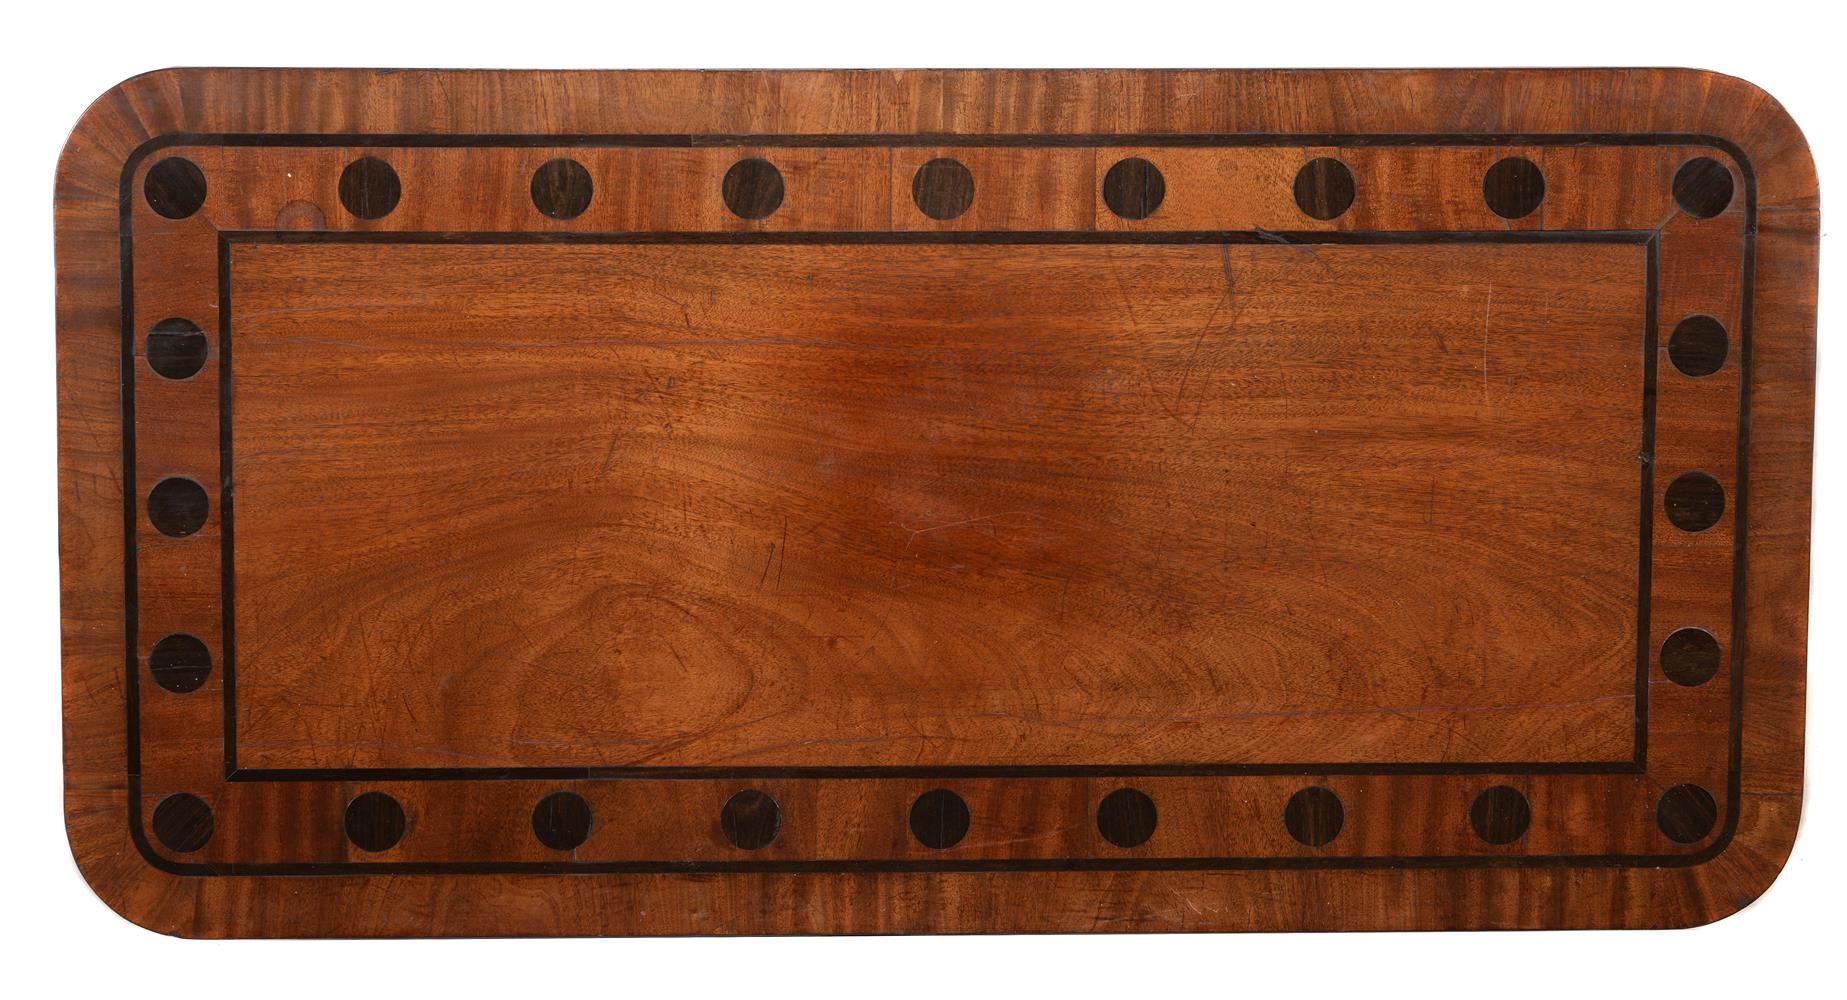 Y A PAIR OF REGENCY MAHOGANY AND MACASSAR EBONY INLAID LIBRARY OR SIDE TABLES, CIRCA 1820 - Image 4 of 5